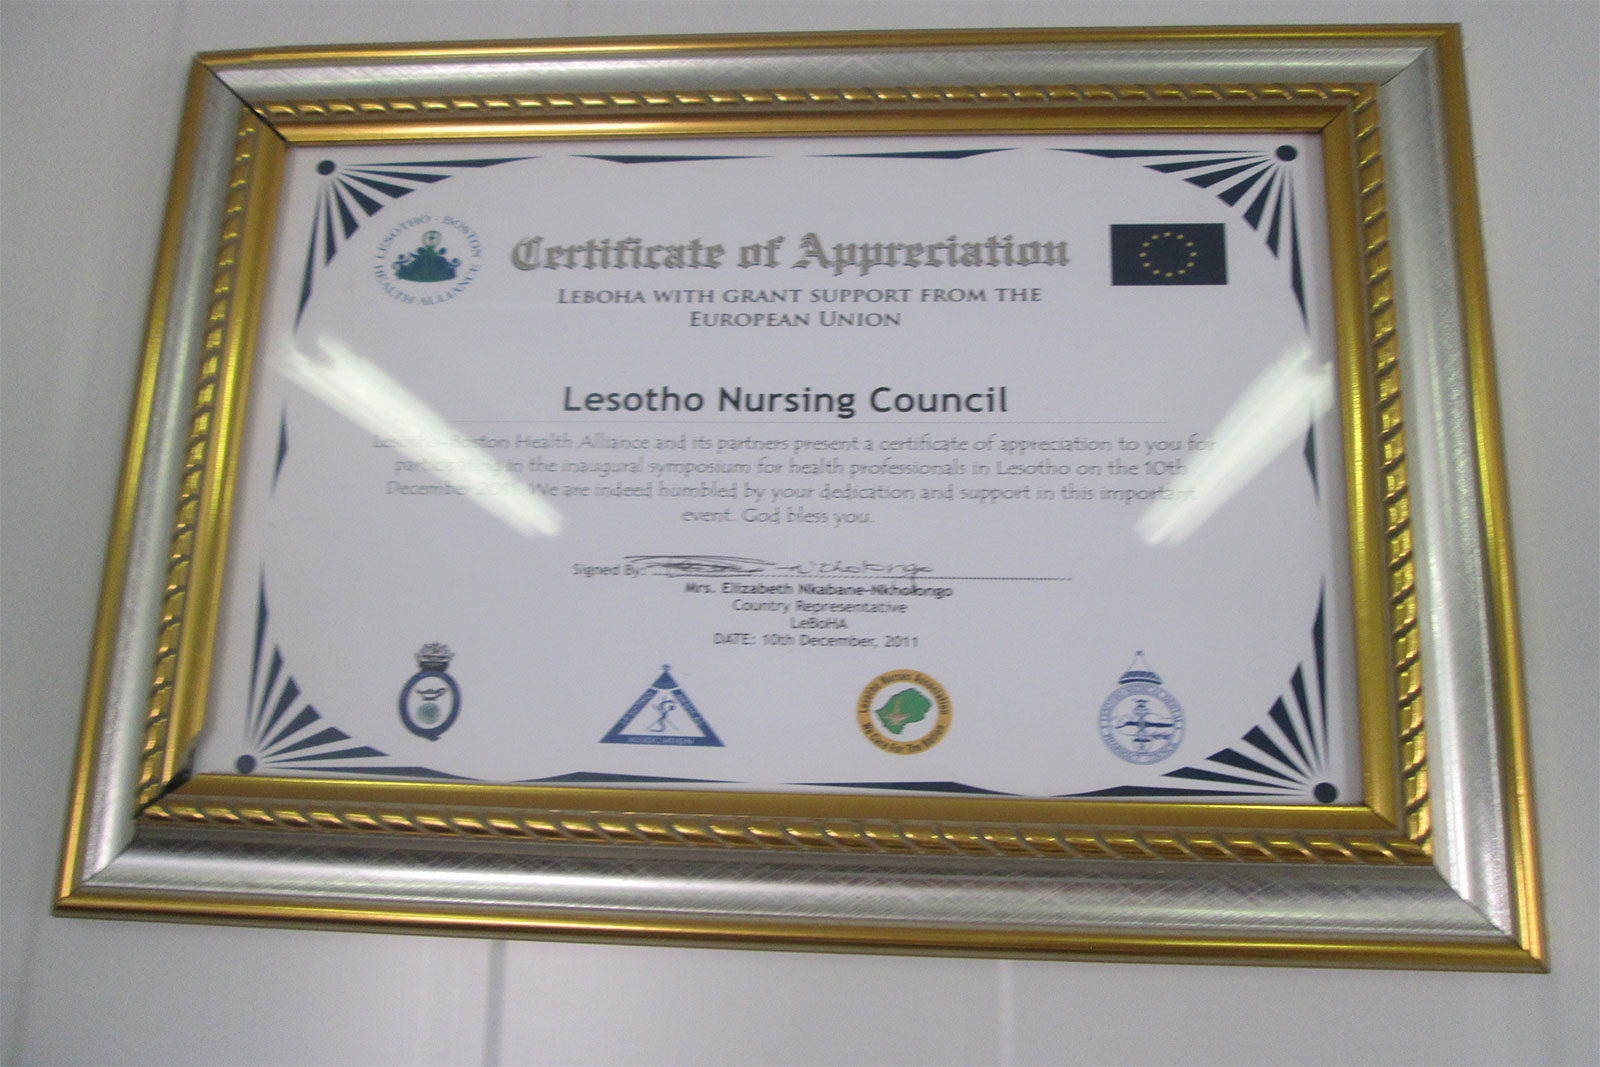 lesotho-nursing-council-certificate-of-appriciation